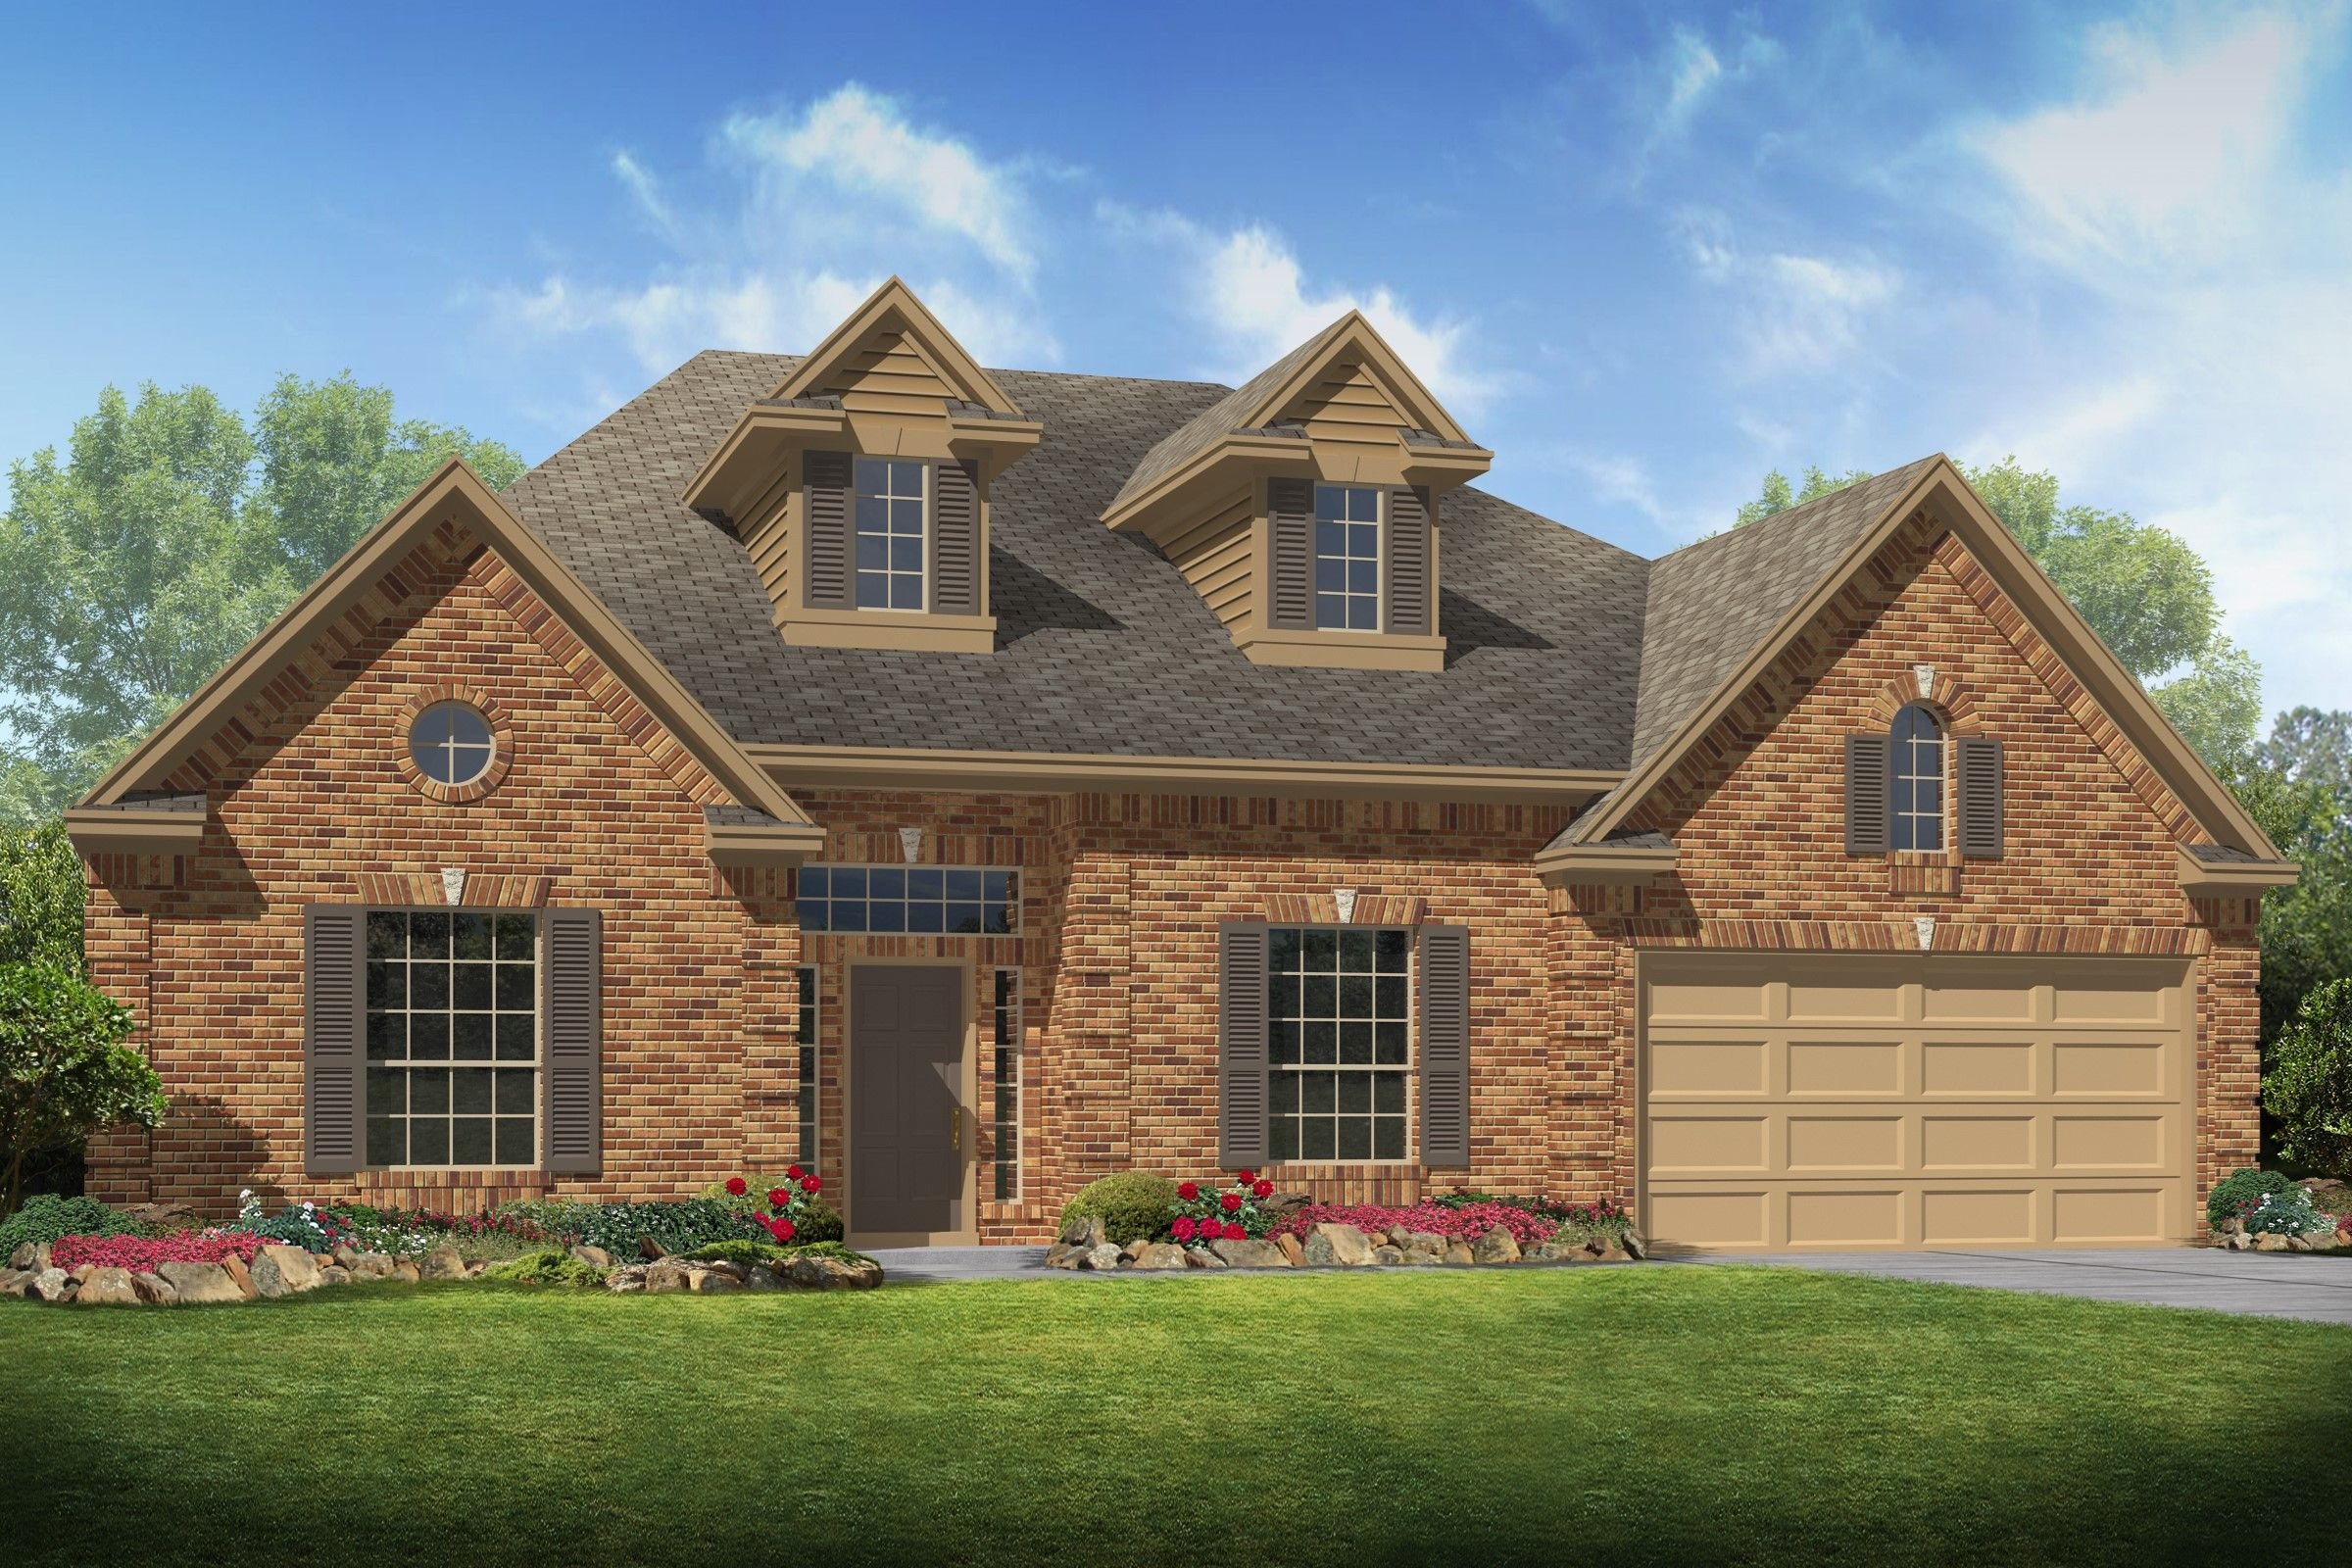 Single Family for Sale at Bayou Lakes - Elissa Alt 1804 Cranston Grove Drive Dickinson, Texas 77539 United States